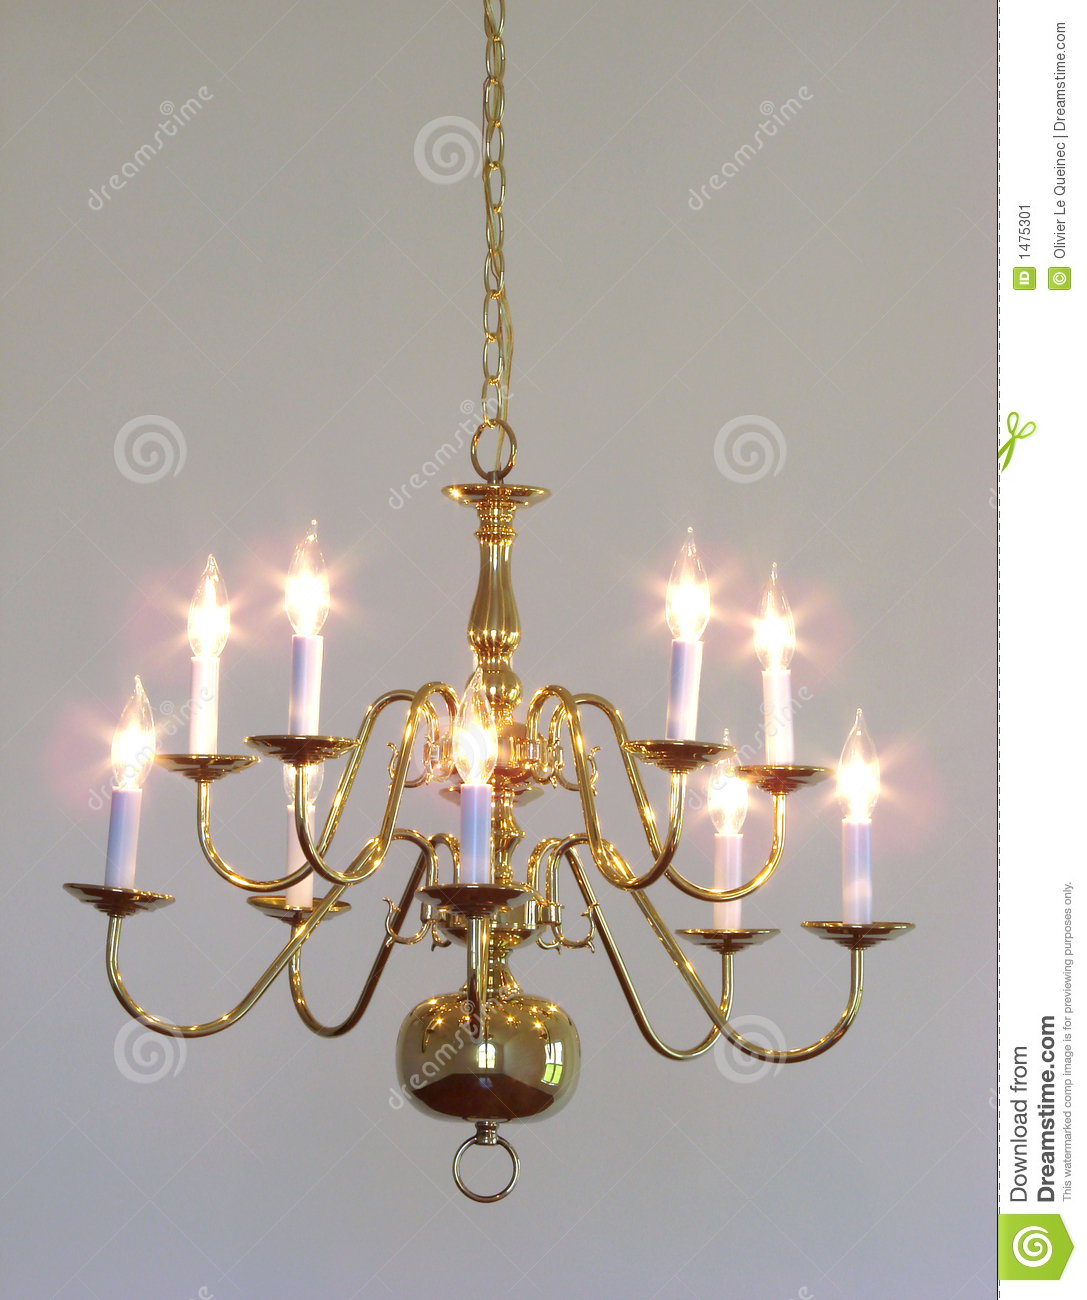 Brass Bulbs Ceiling Chandelier Classic Clear Dining Fixture Flame Hanging Home House Light Room